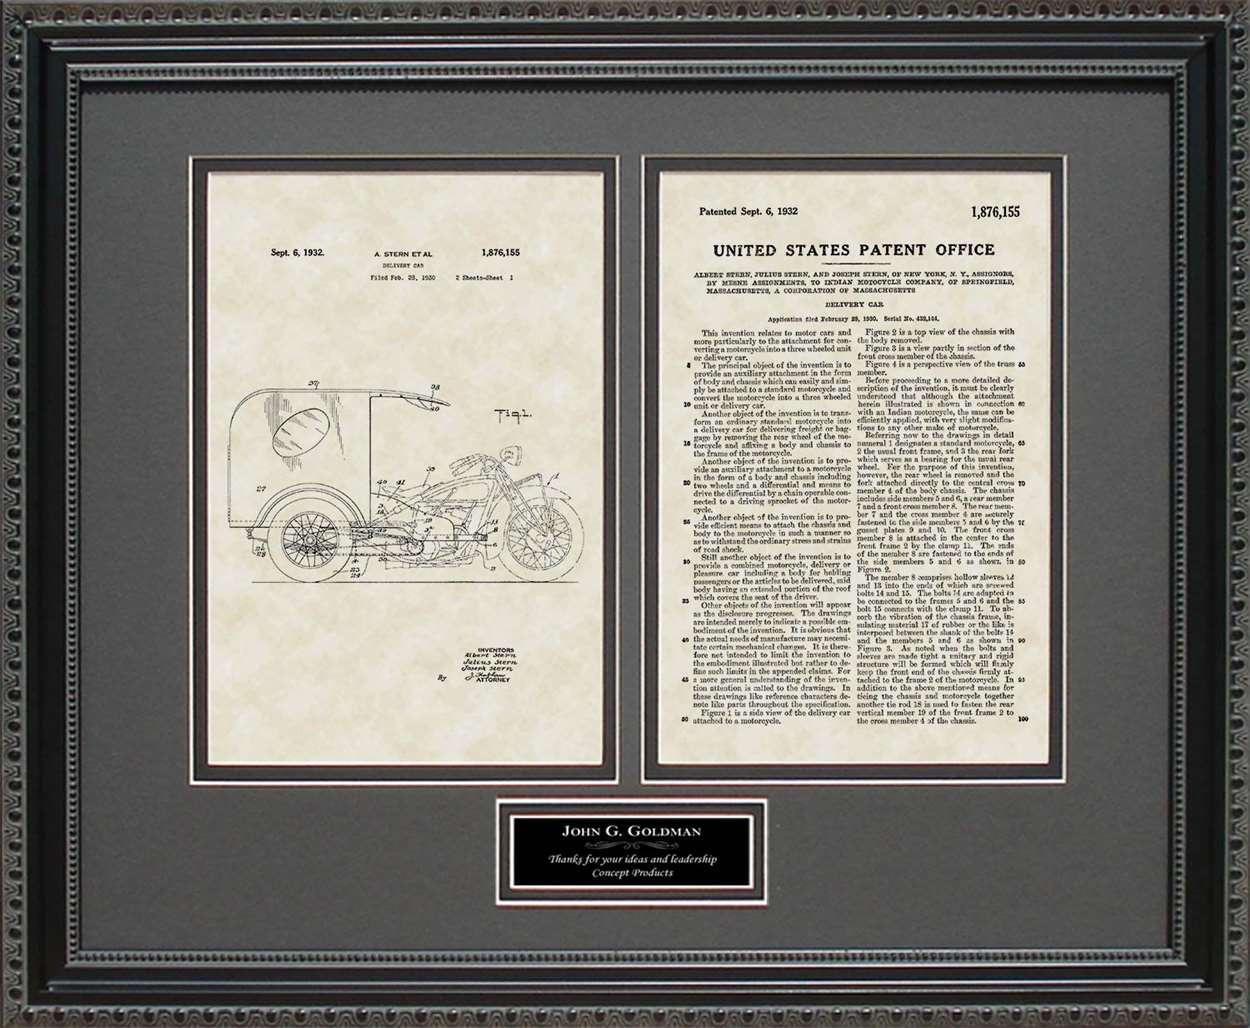 Personalized 3-Wheel Delivery Car Patent, Art & Copy, Stern, 1932